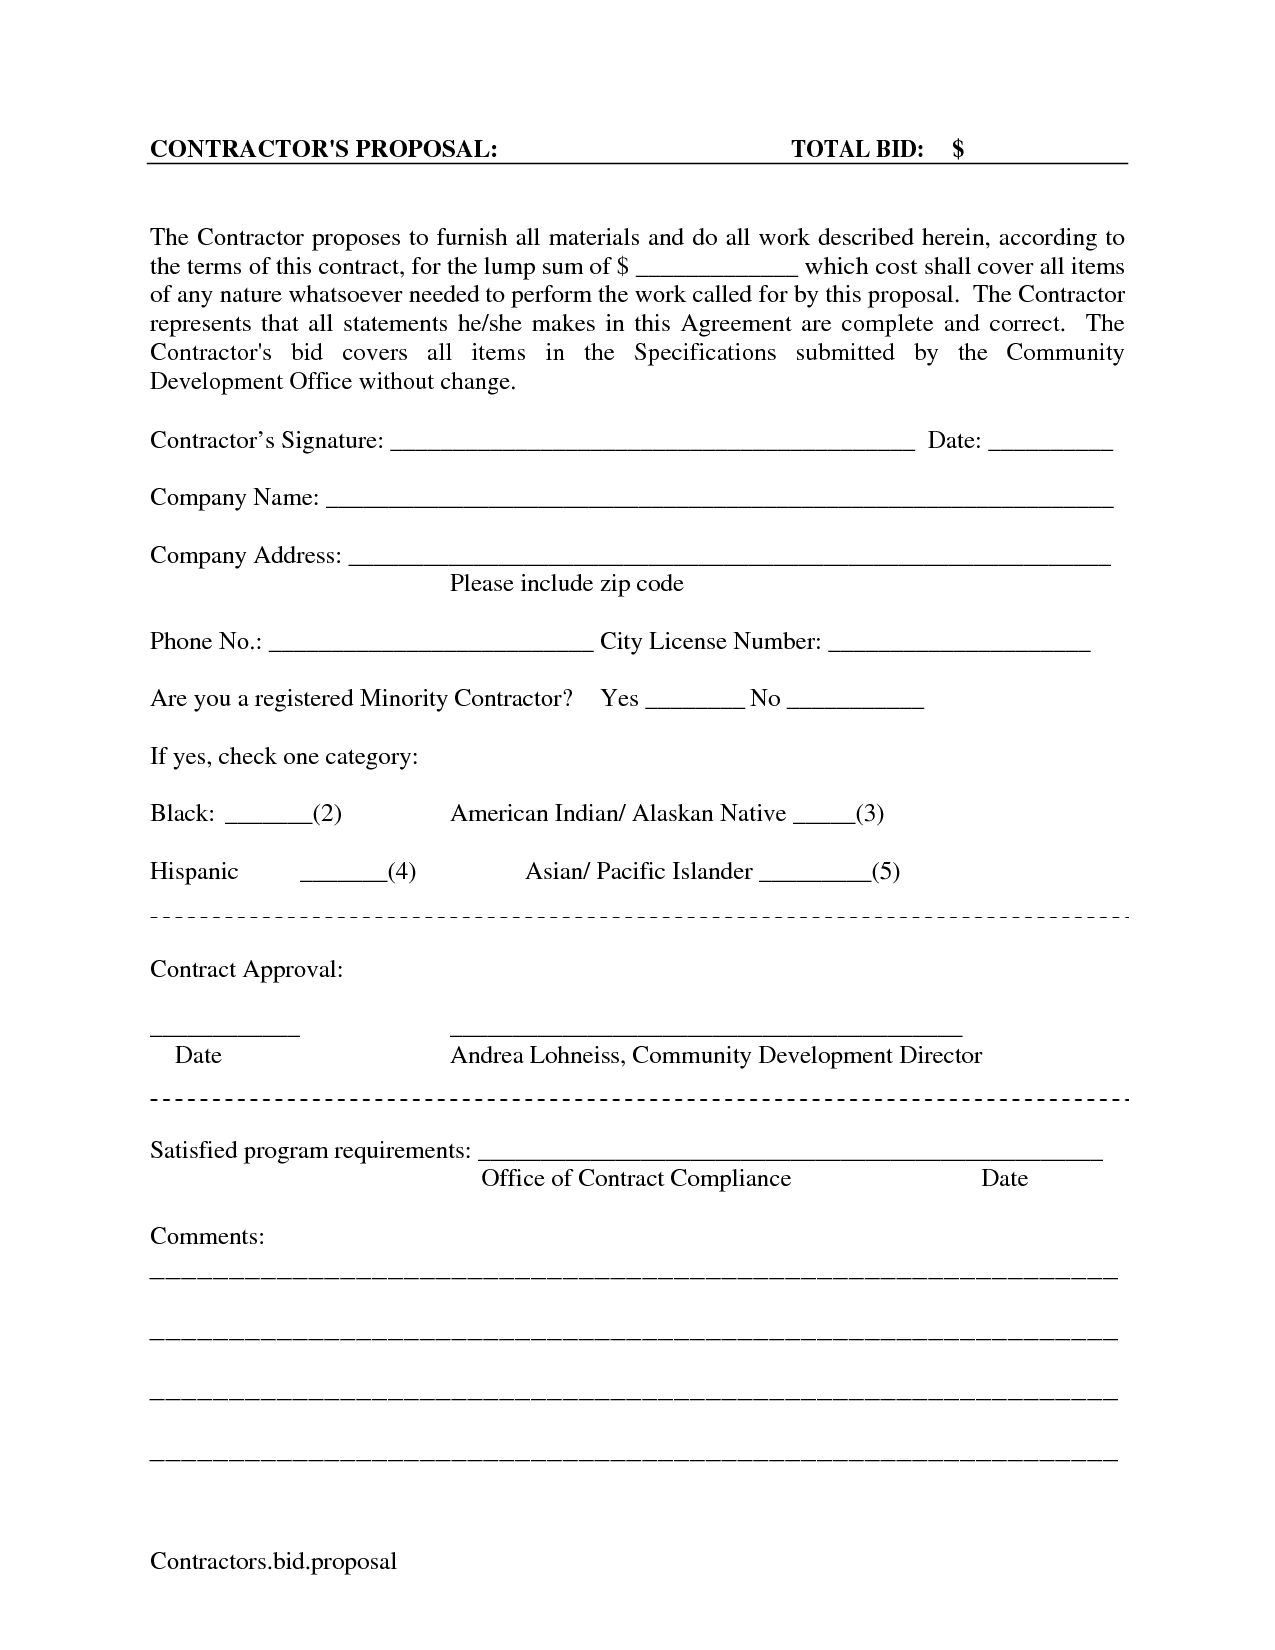 Printable Blank Bid Proposal Forms | Scope Of Work Template  Free Construction Bid Template